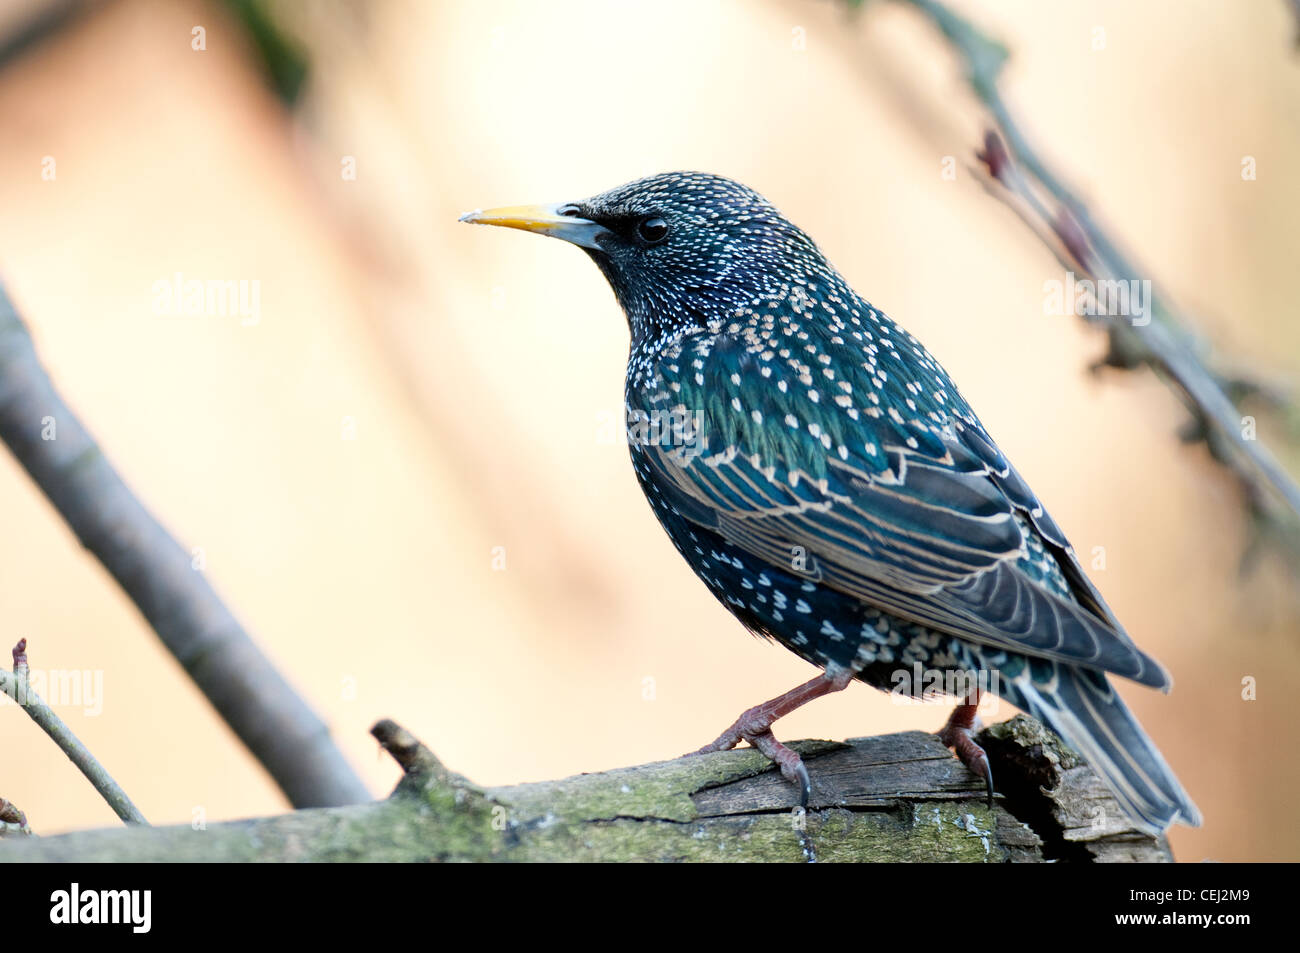 Starling Sturnus vulgaruis gregerious aggressive colourful irdescent luminous light bright shiny spotty. - Stock Image